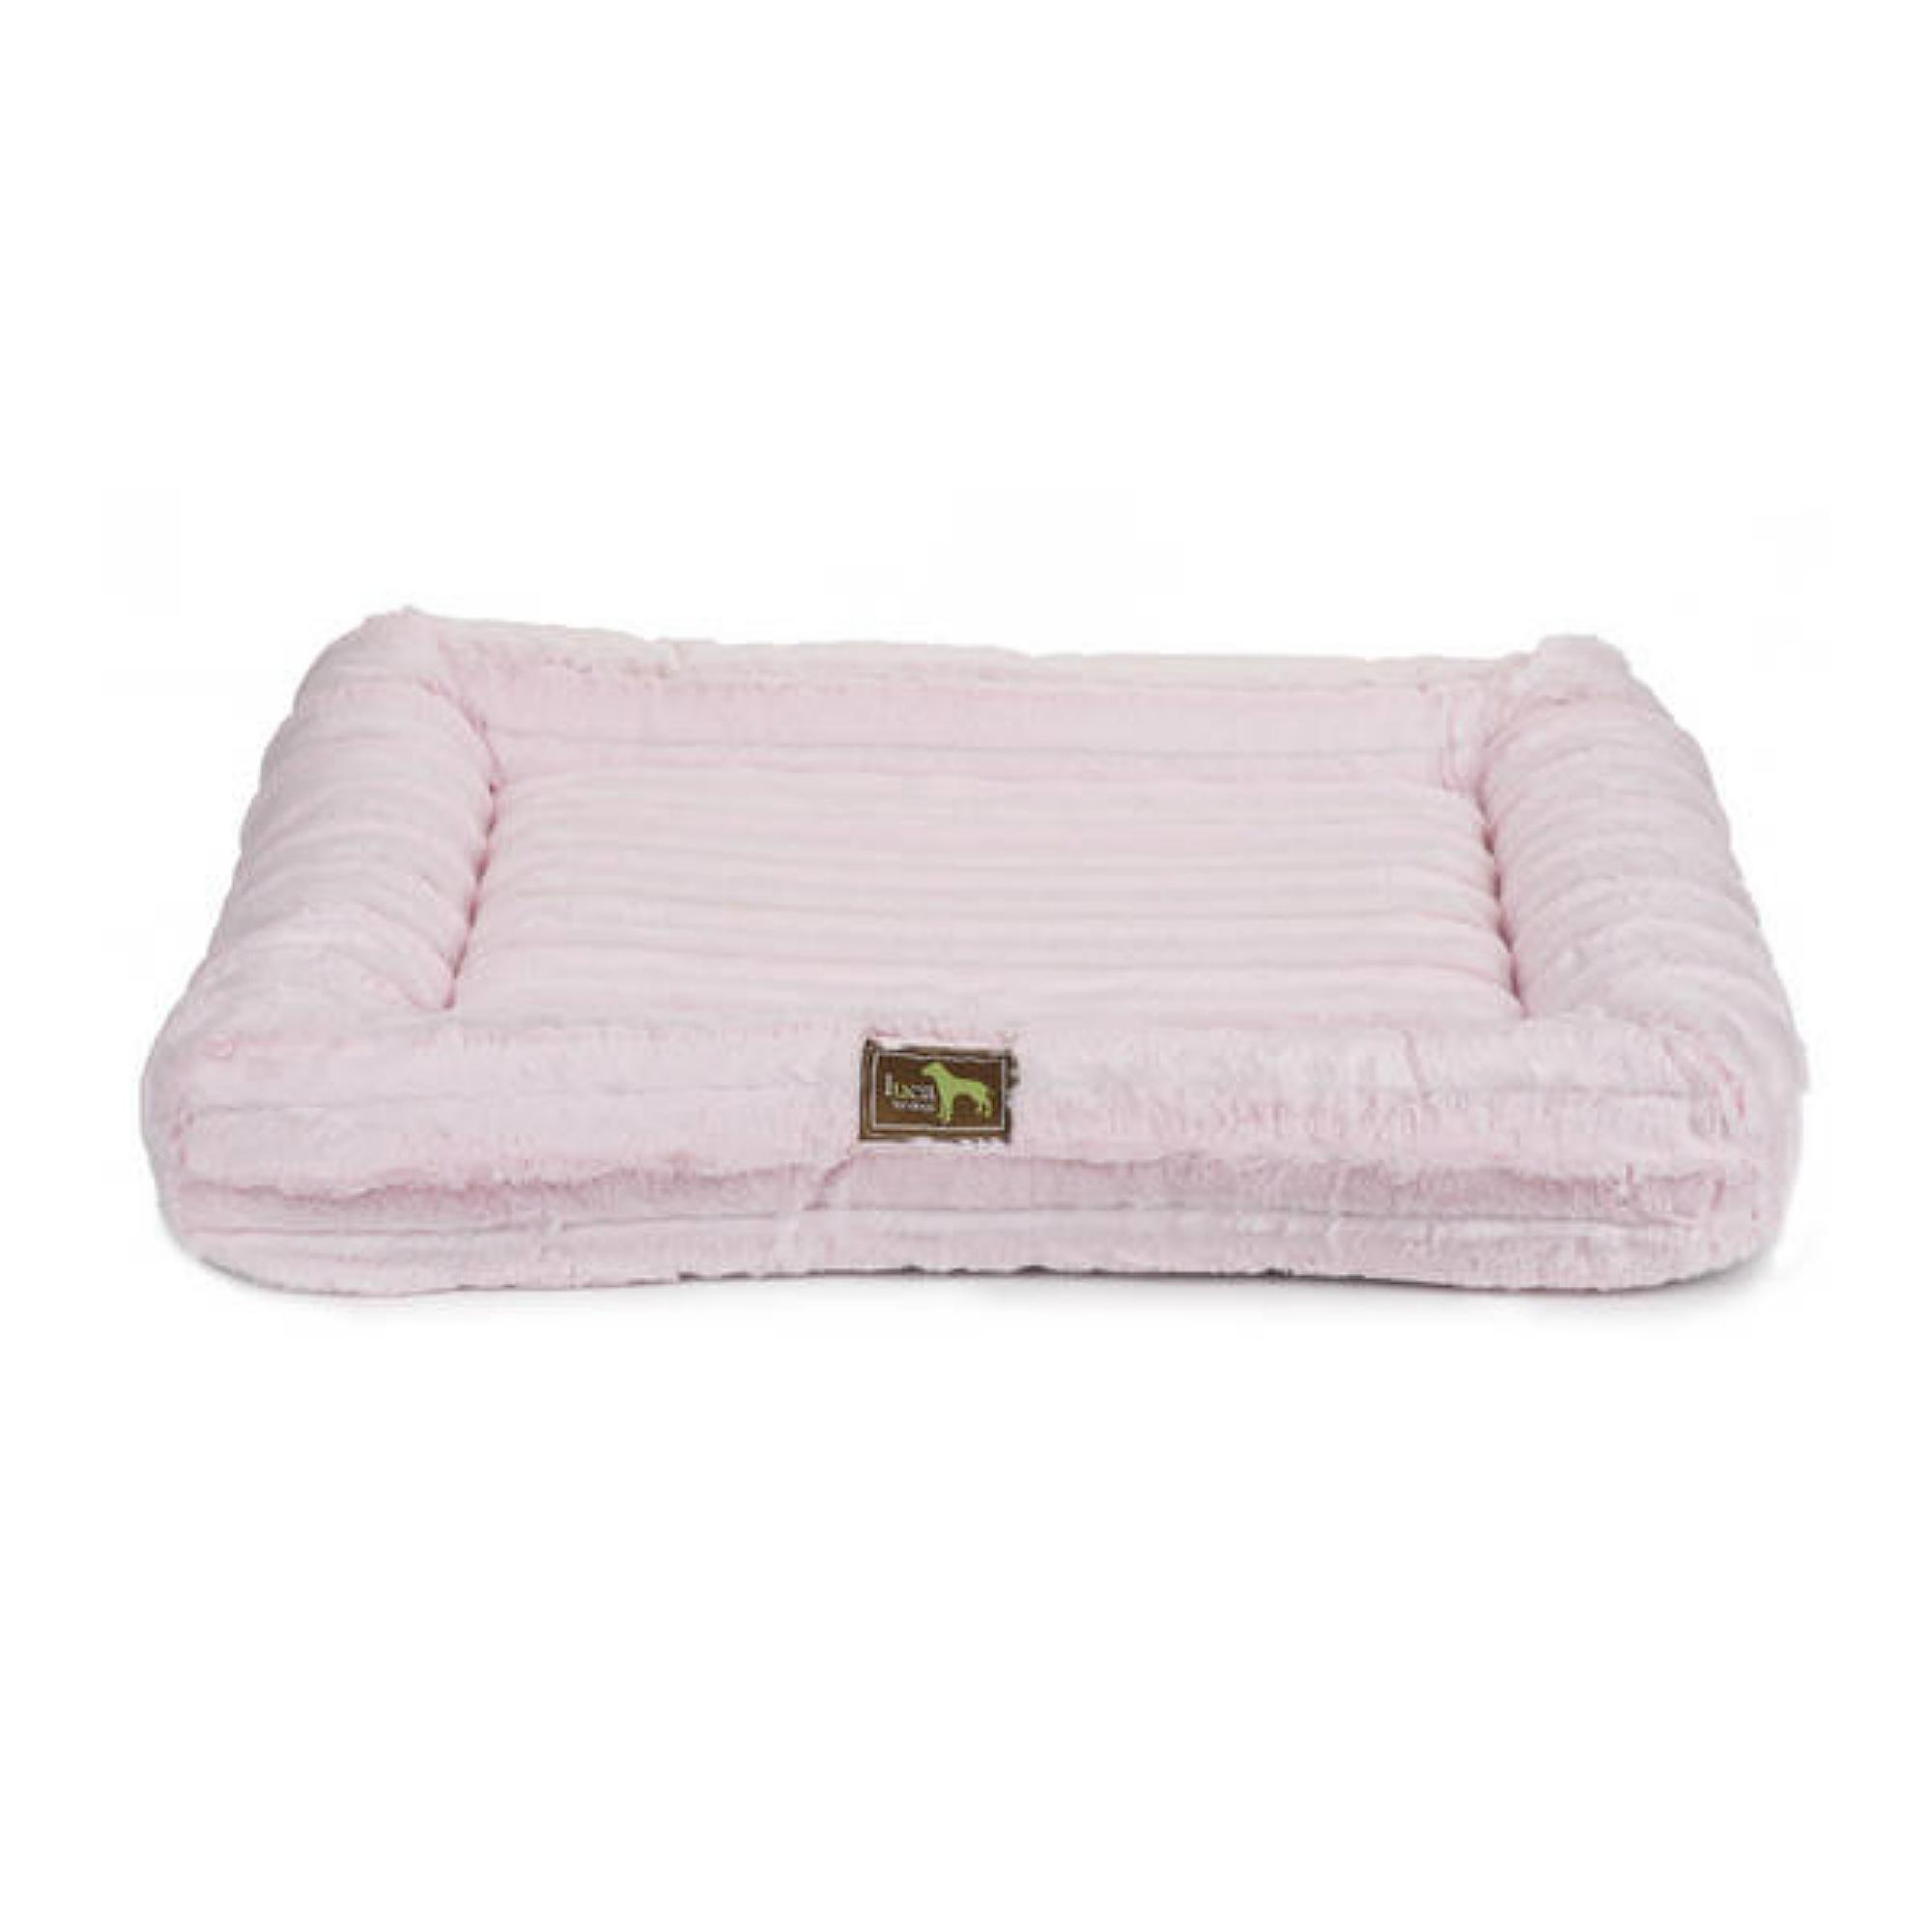 Luca Crate Cuddler Chinchilla Dog Bed - Baby Pink